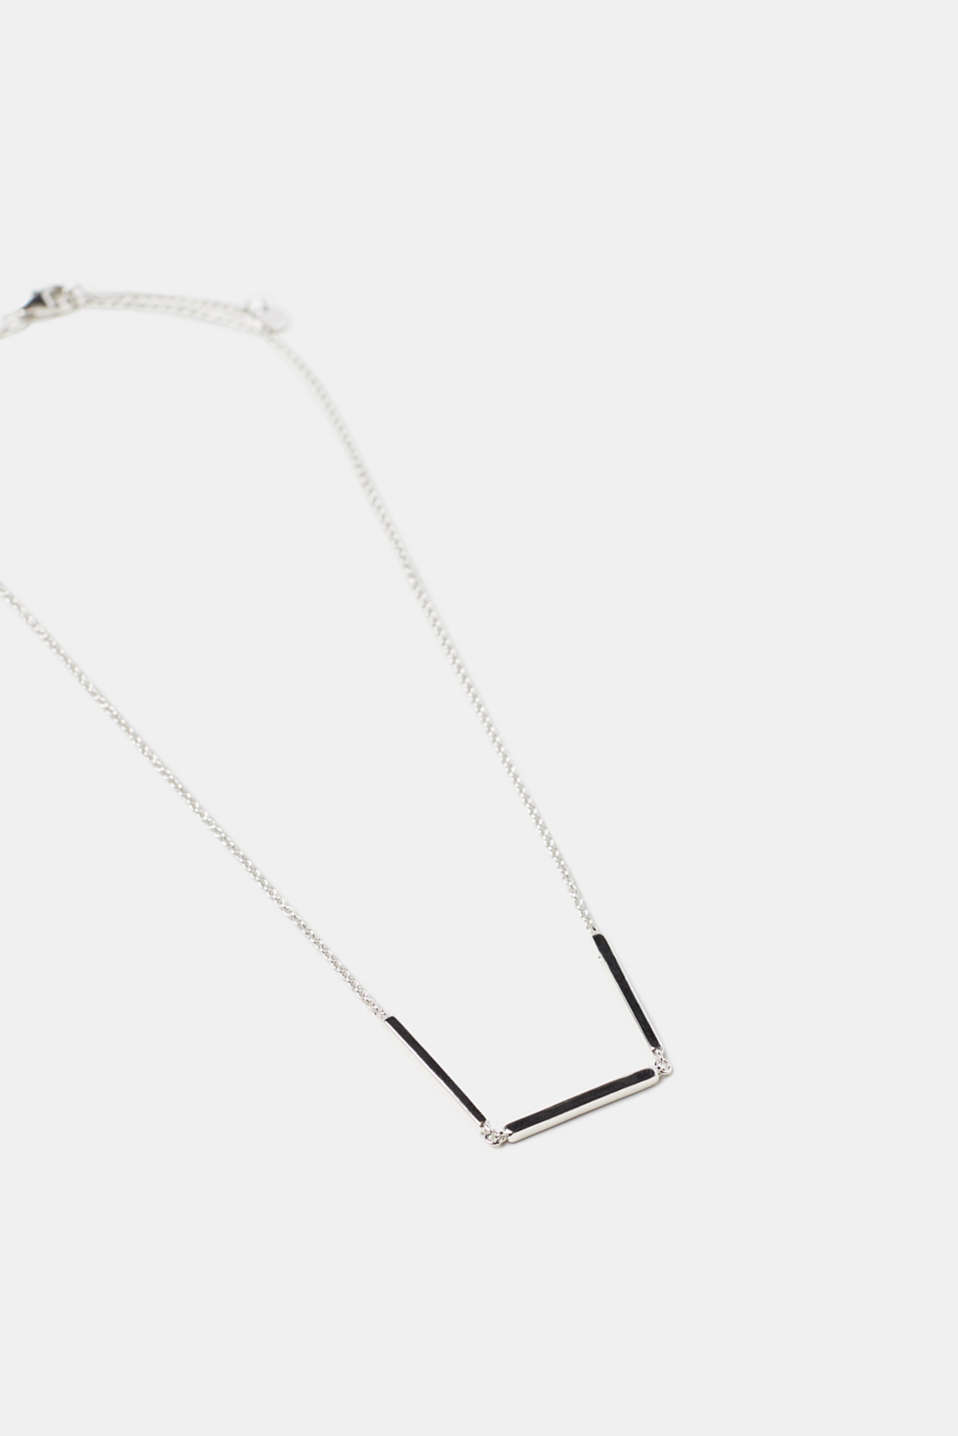 Esprit - Fine sterling silver necklace with zirconia